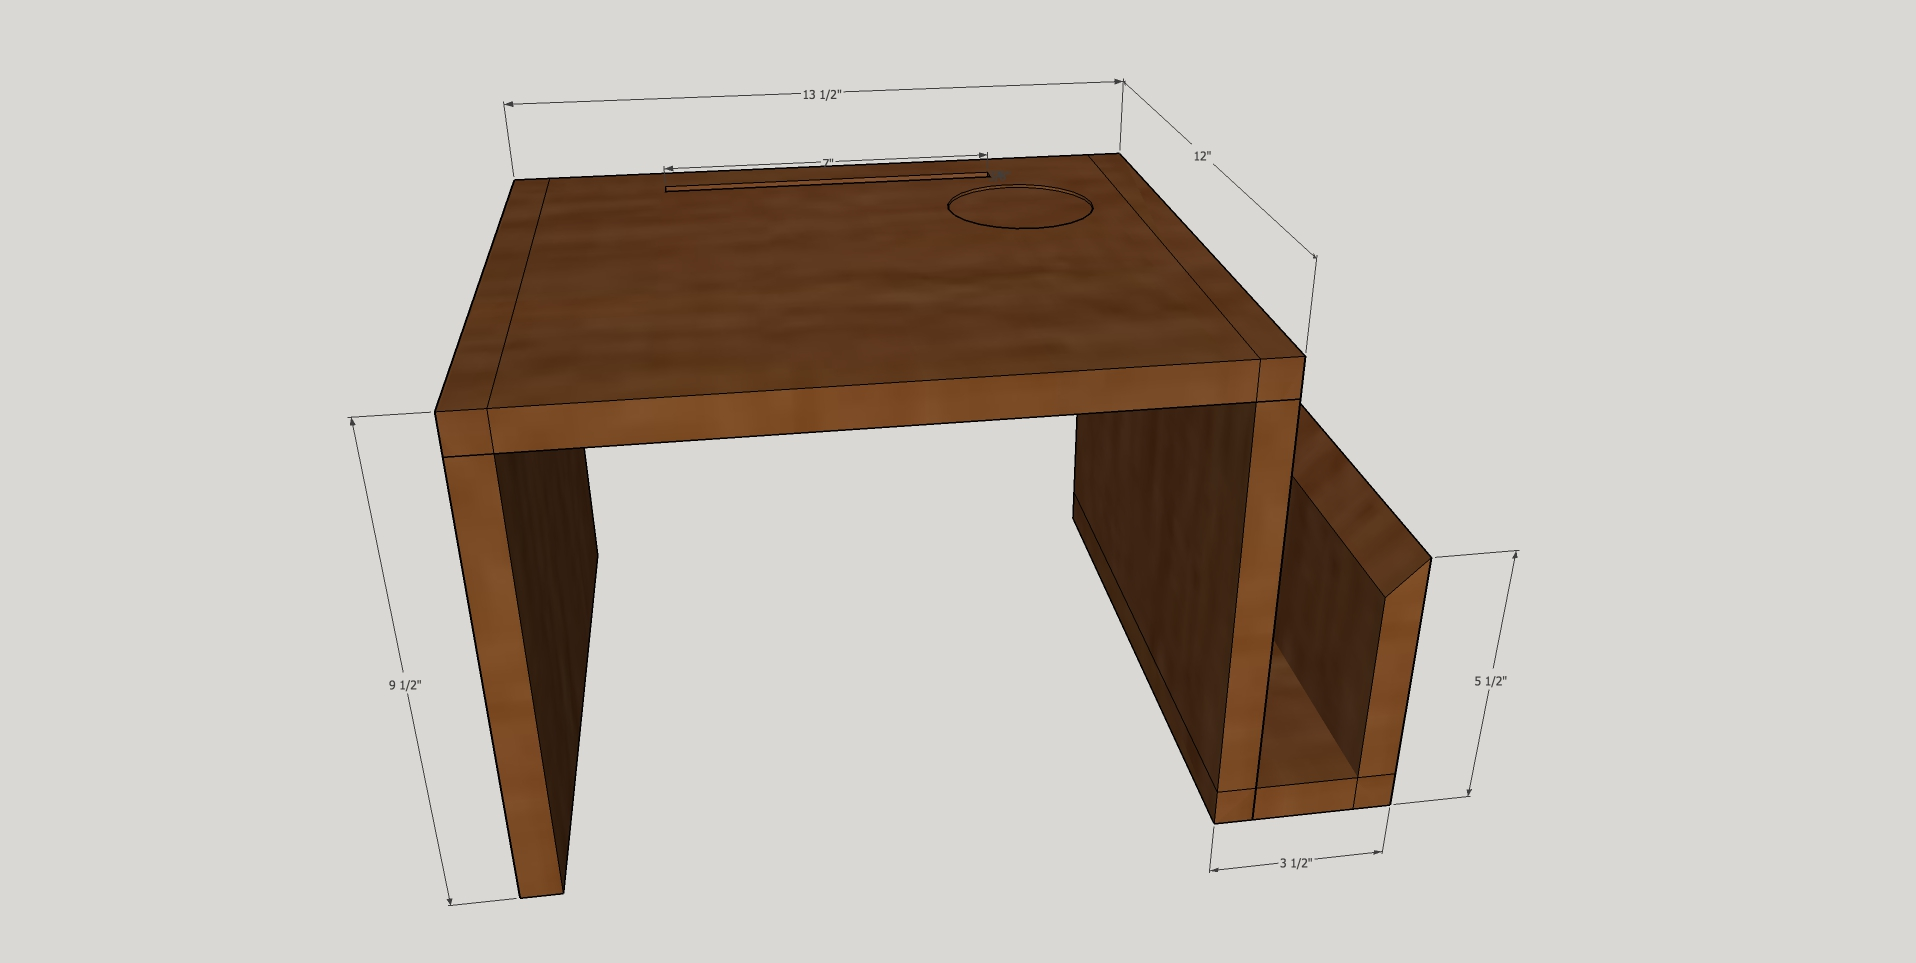 It's always good to make your design in SketchUp first